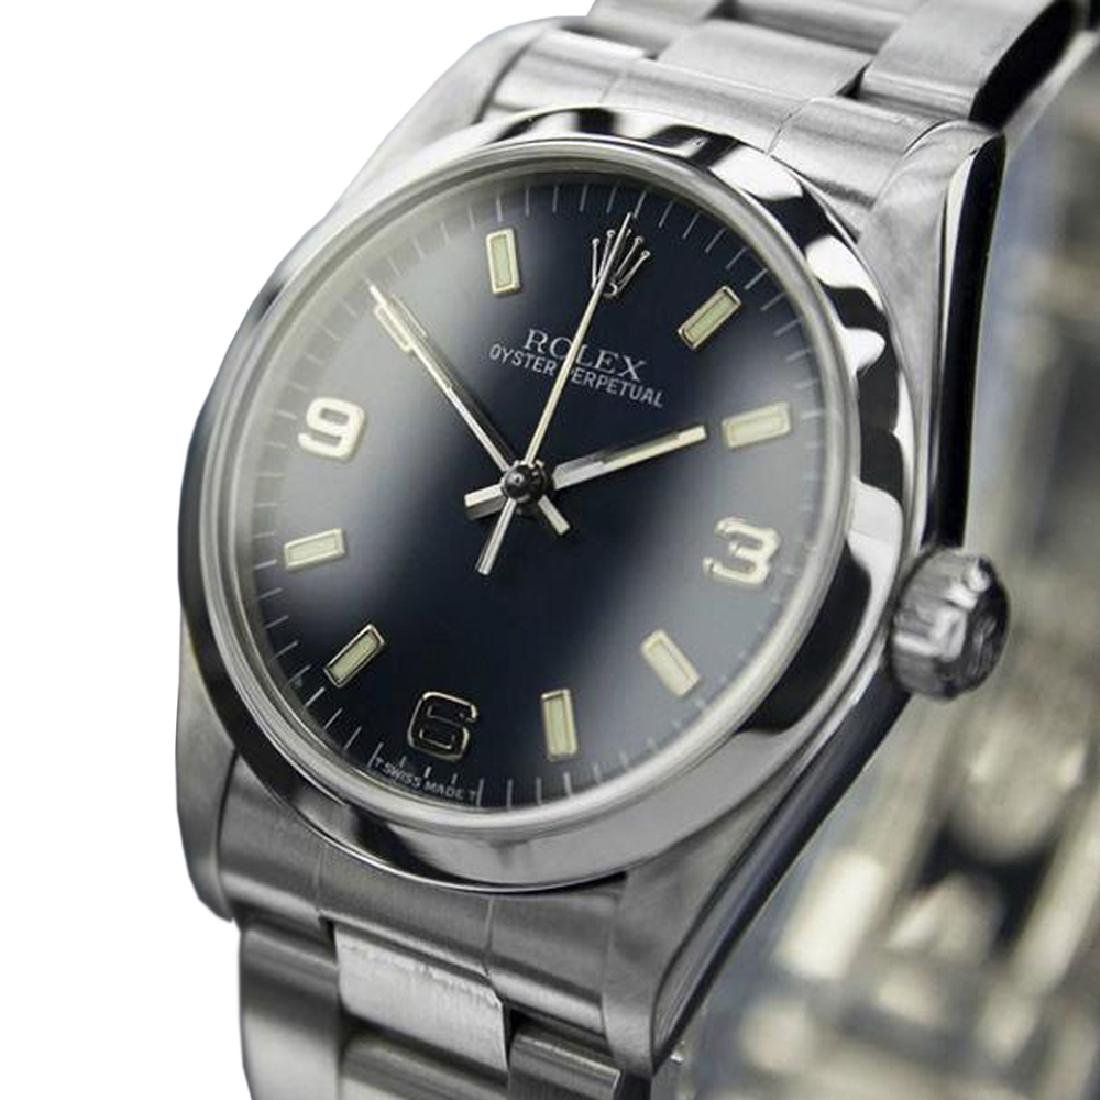 *Unisex Rolex Oyster Precision 1999 Mid-size Watch